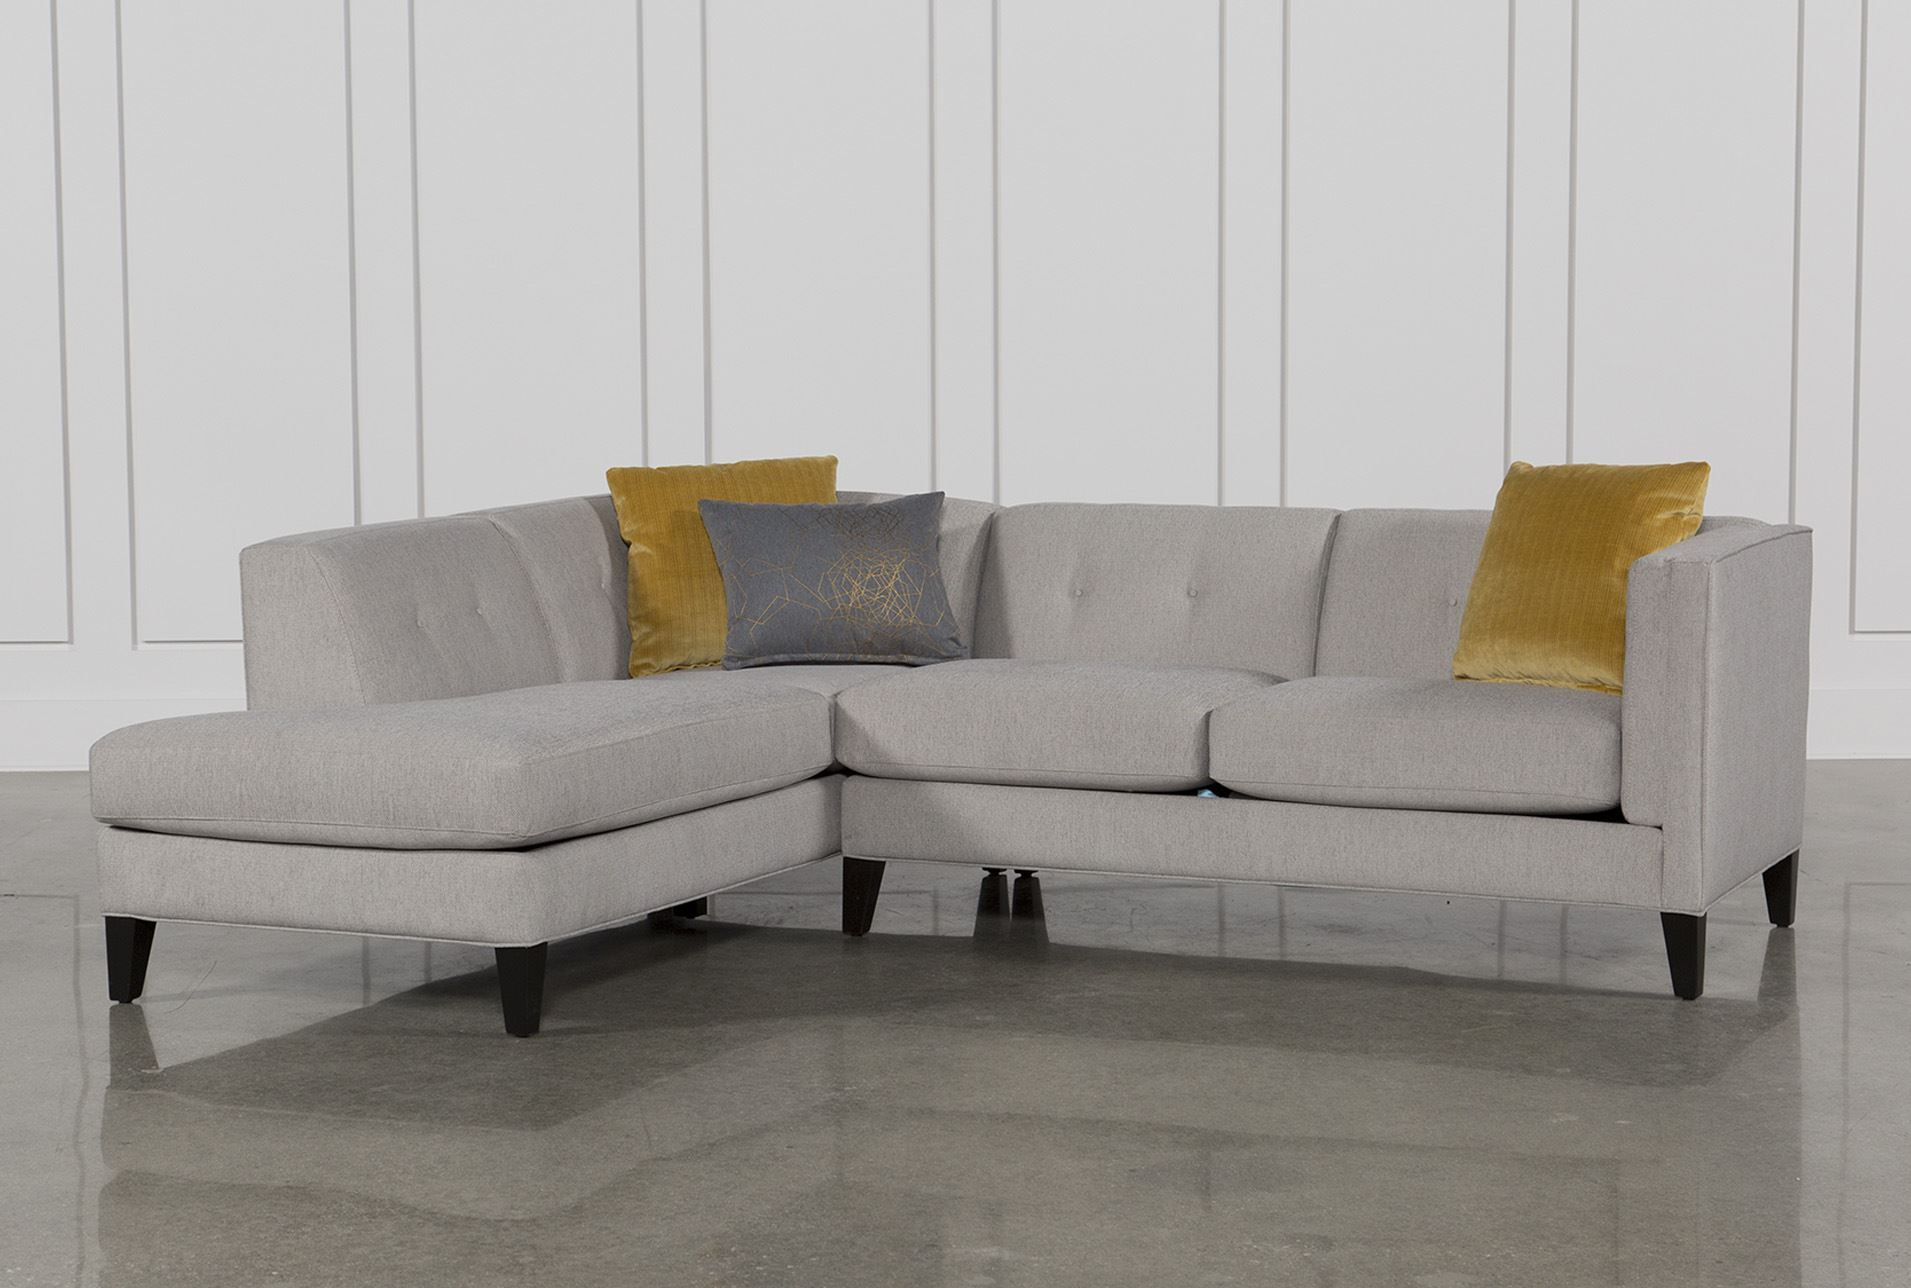 Avery 2 Piece Sectional   Small Sectional Sofa, Small In Avery 2 Piece Sectionals With Laf Armless Chaise (View 11 of 15)